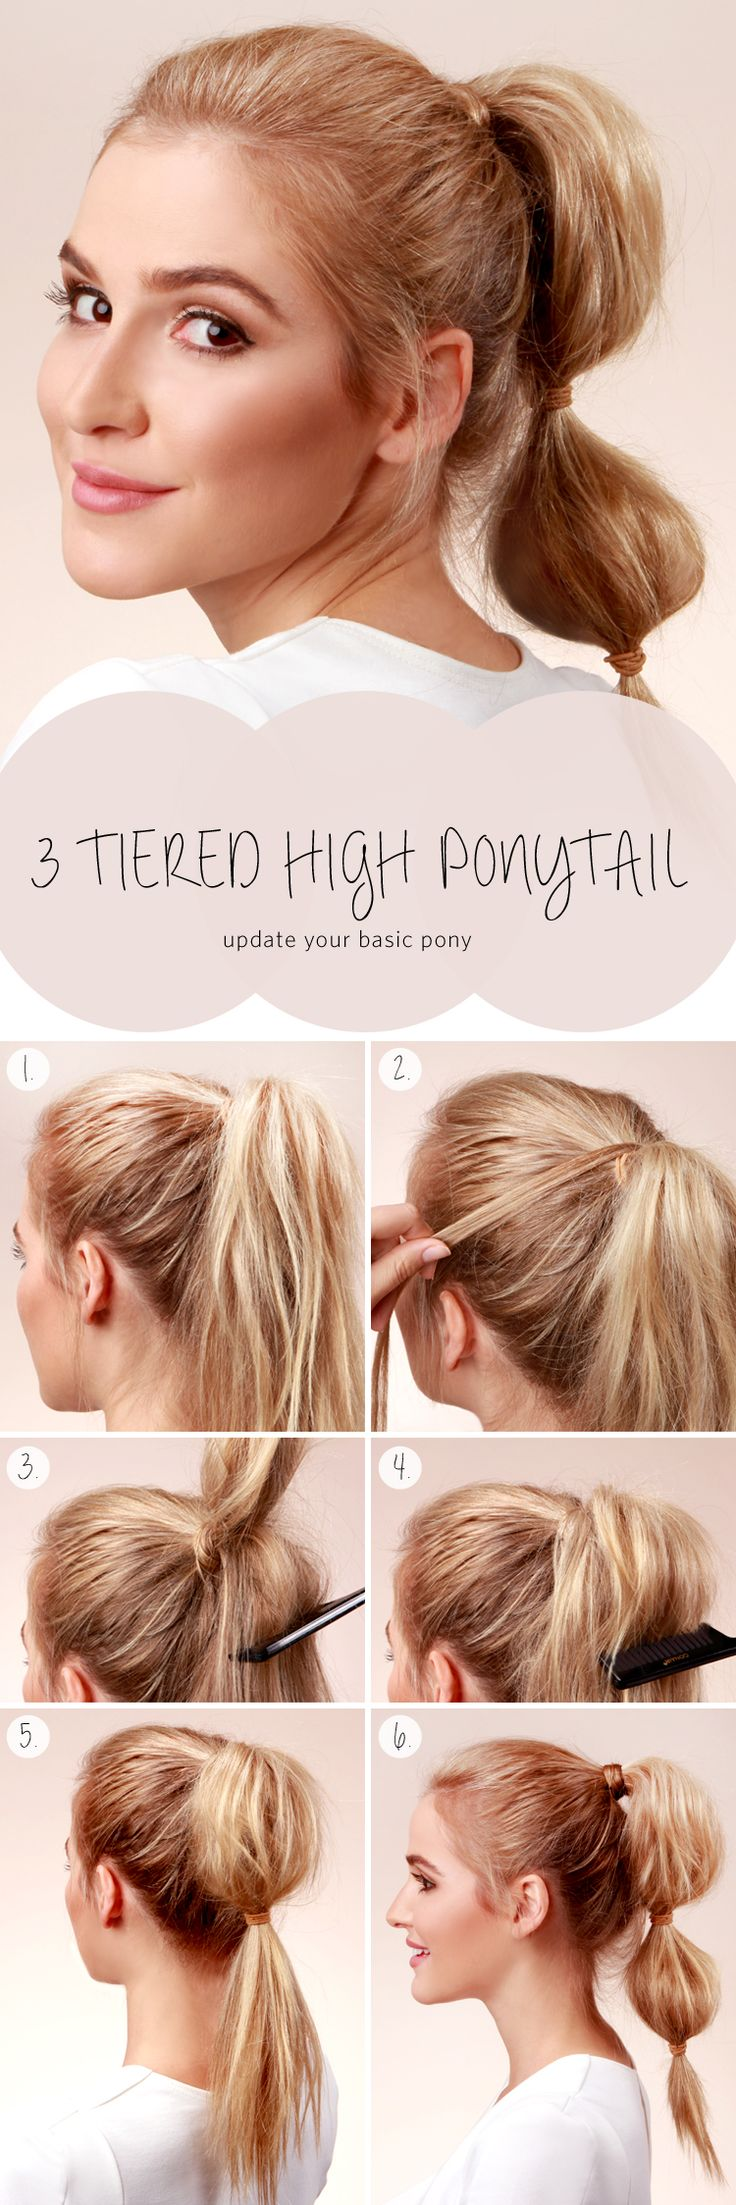 best 25+ high ponytail tutorial ideas on pinterest | perfect